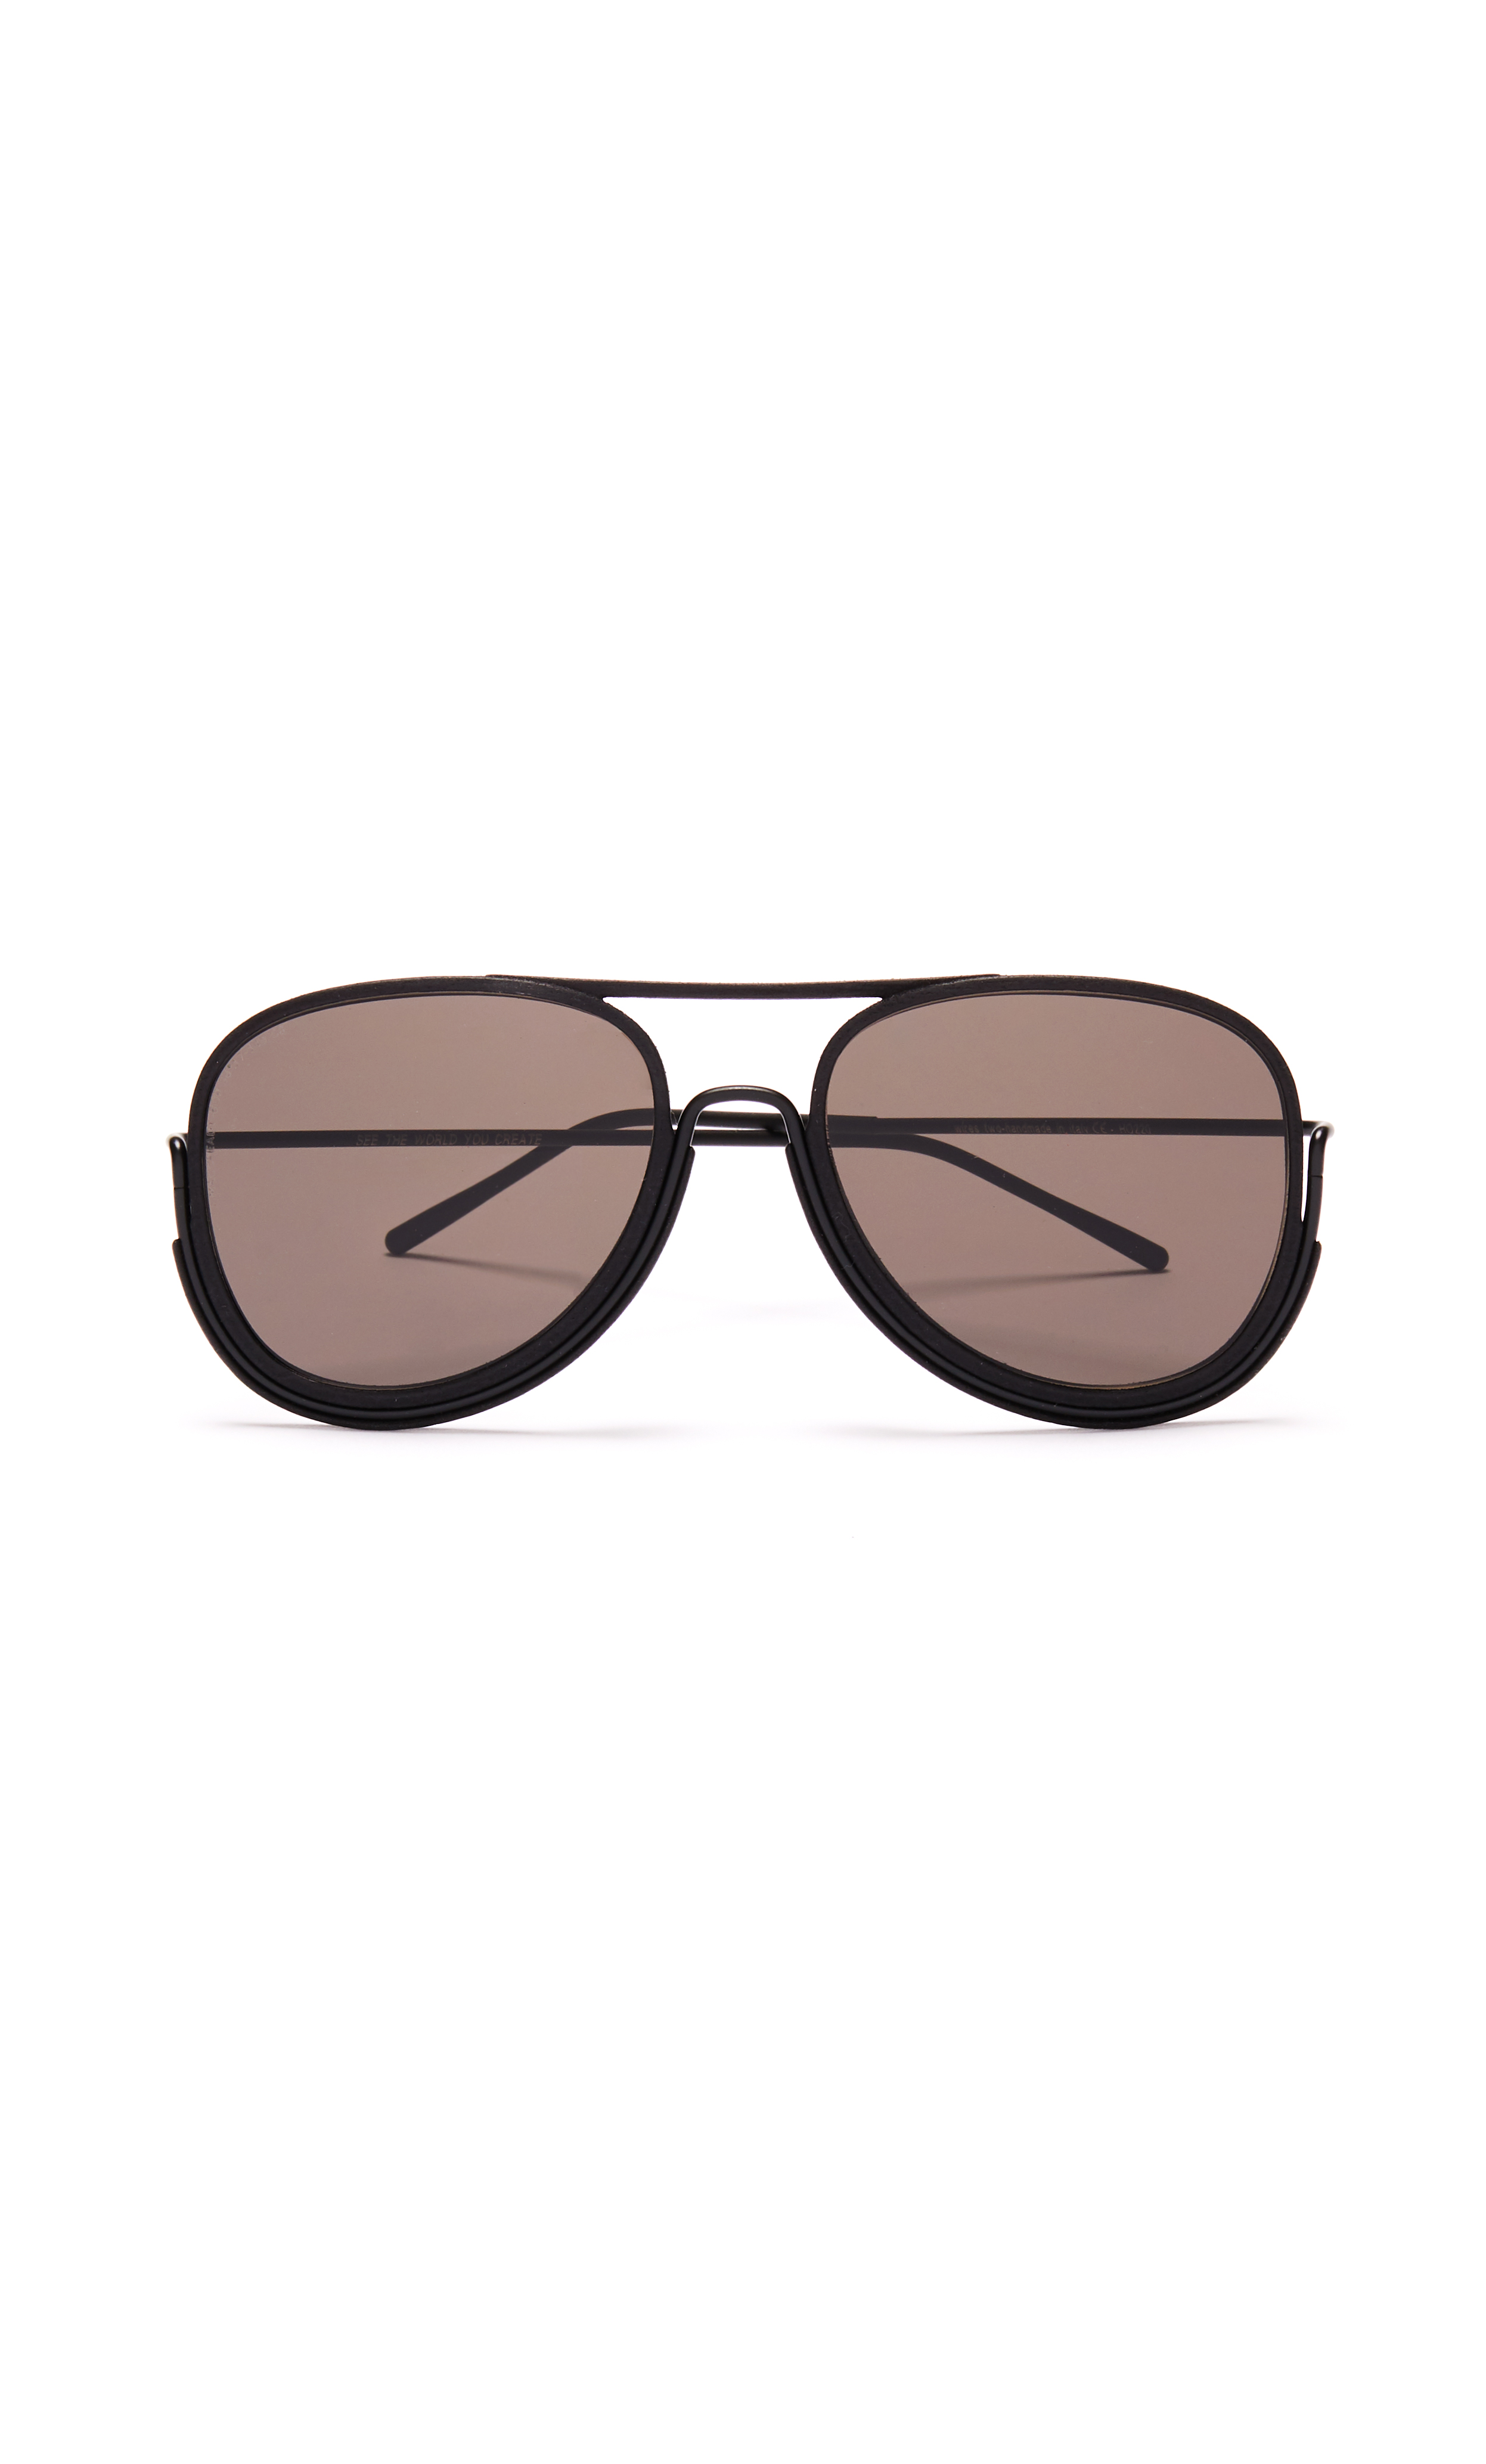 MacCready Sunglasses by Wires Glasses on curated-crowd.com